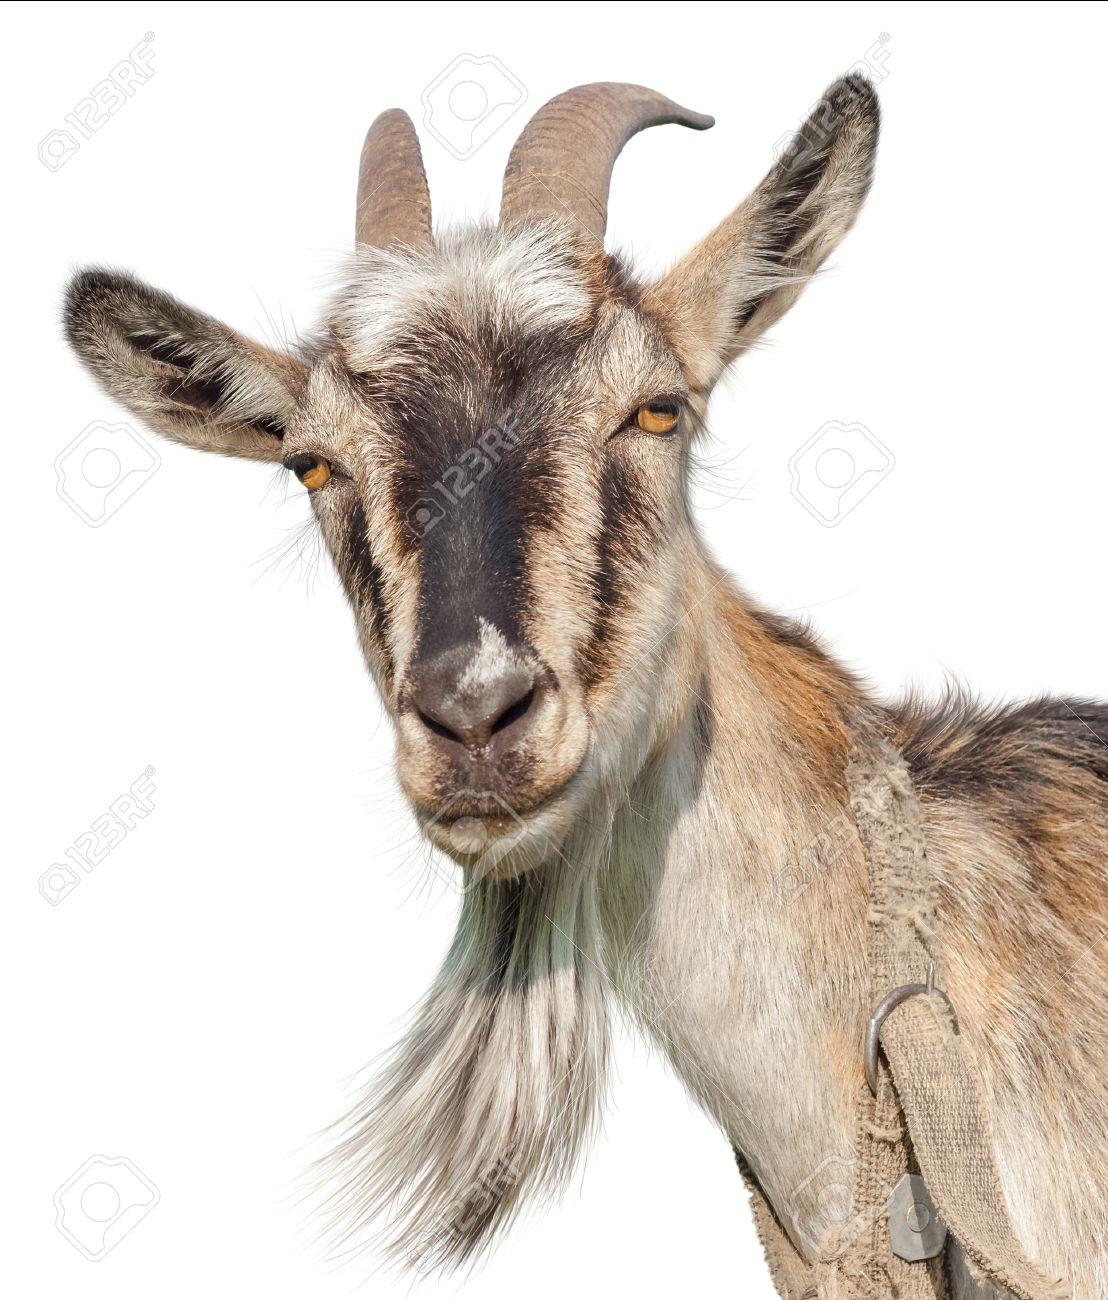 Goat isolated on a white background. Transparent PNG file available.